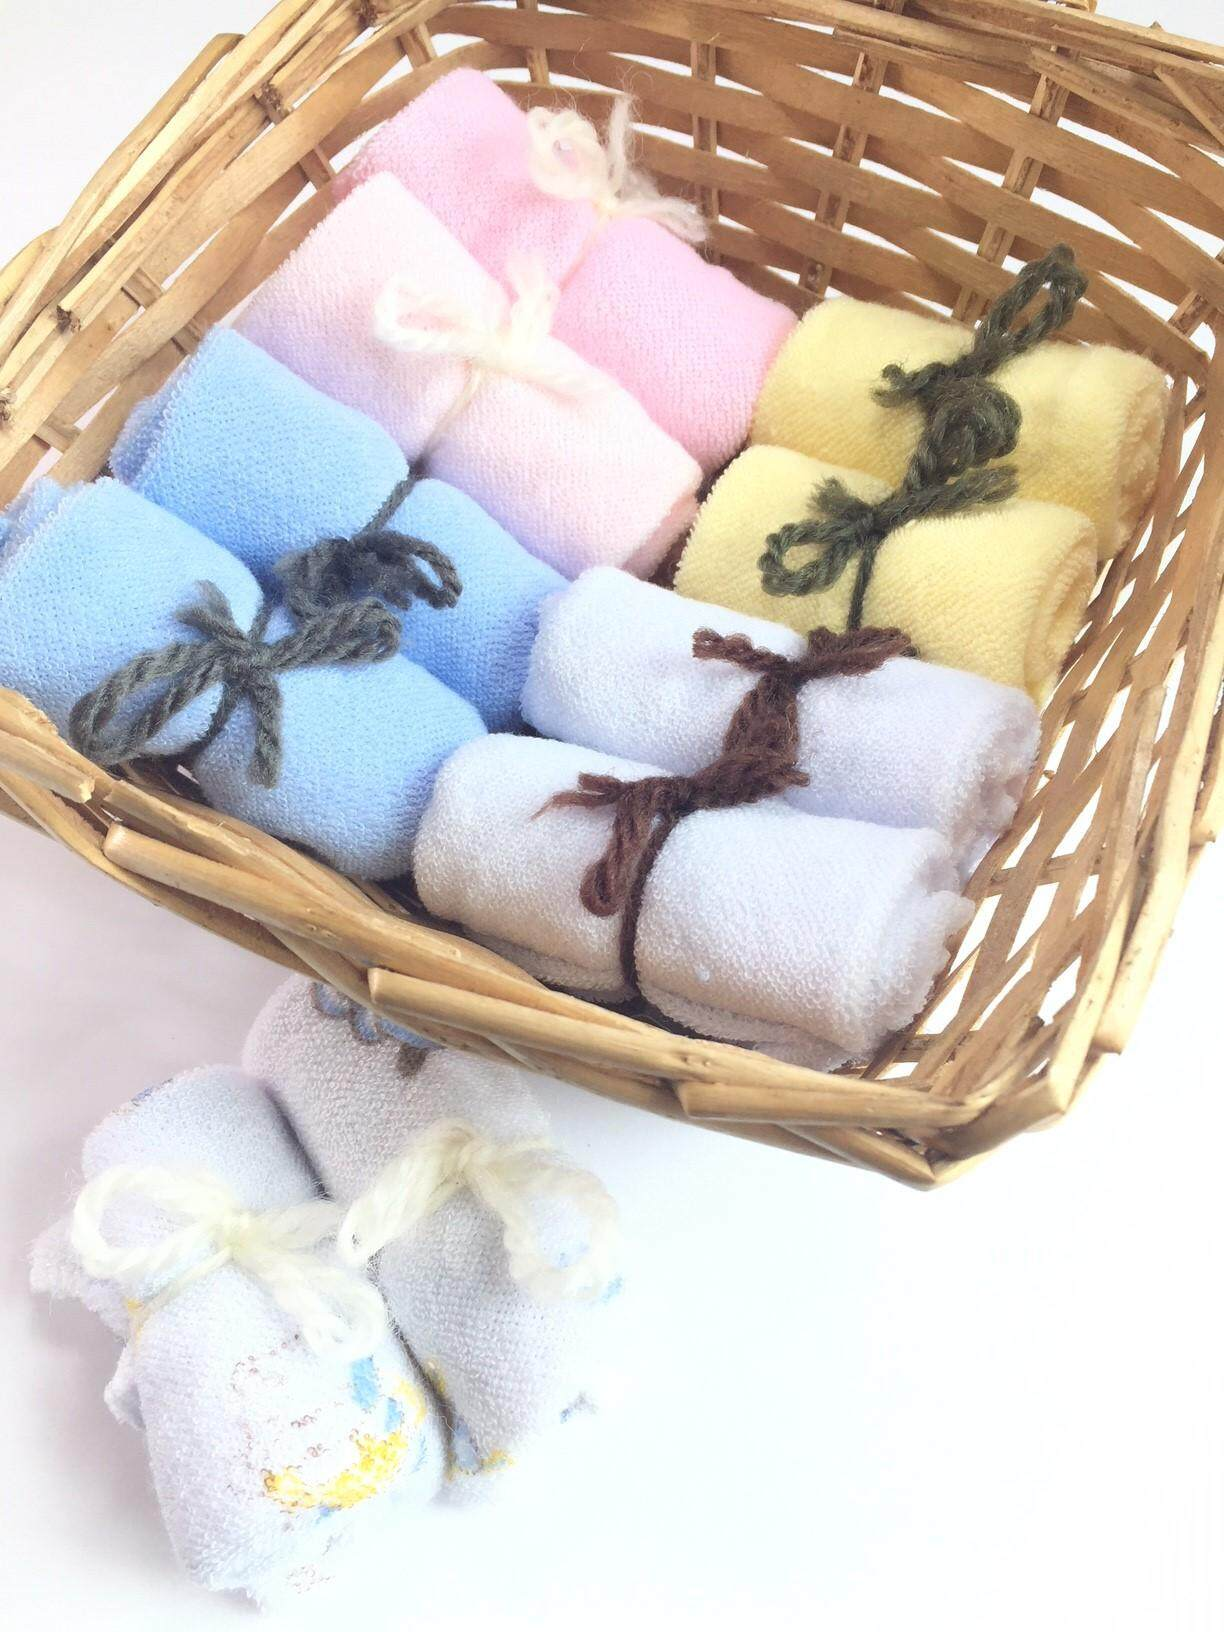 ROWCES BAE Japan Bamboo Baby Wash Cloth